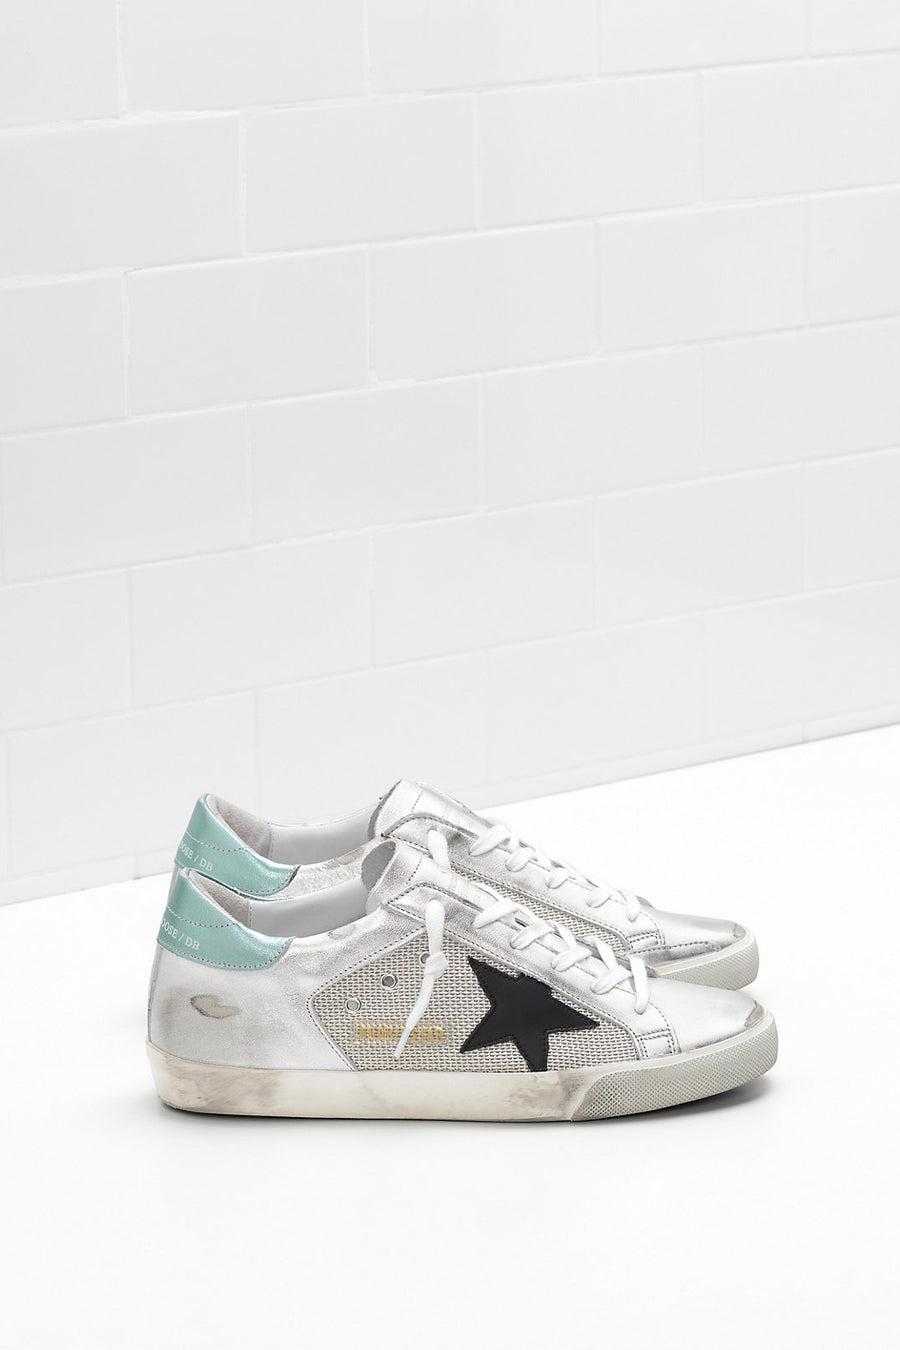 Superstar - White Silver Half-Green Laminated Leather - Pavilion